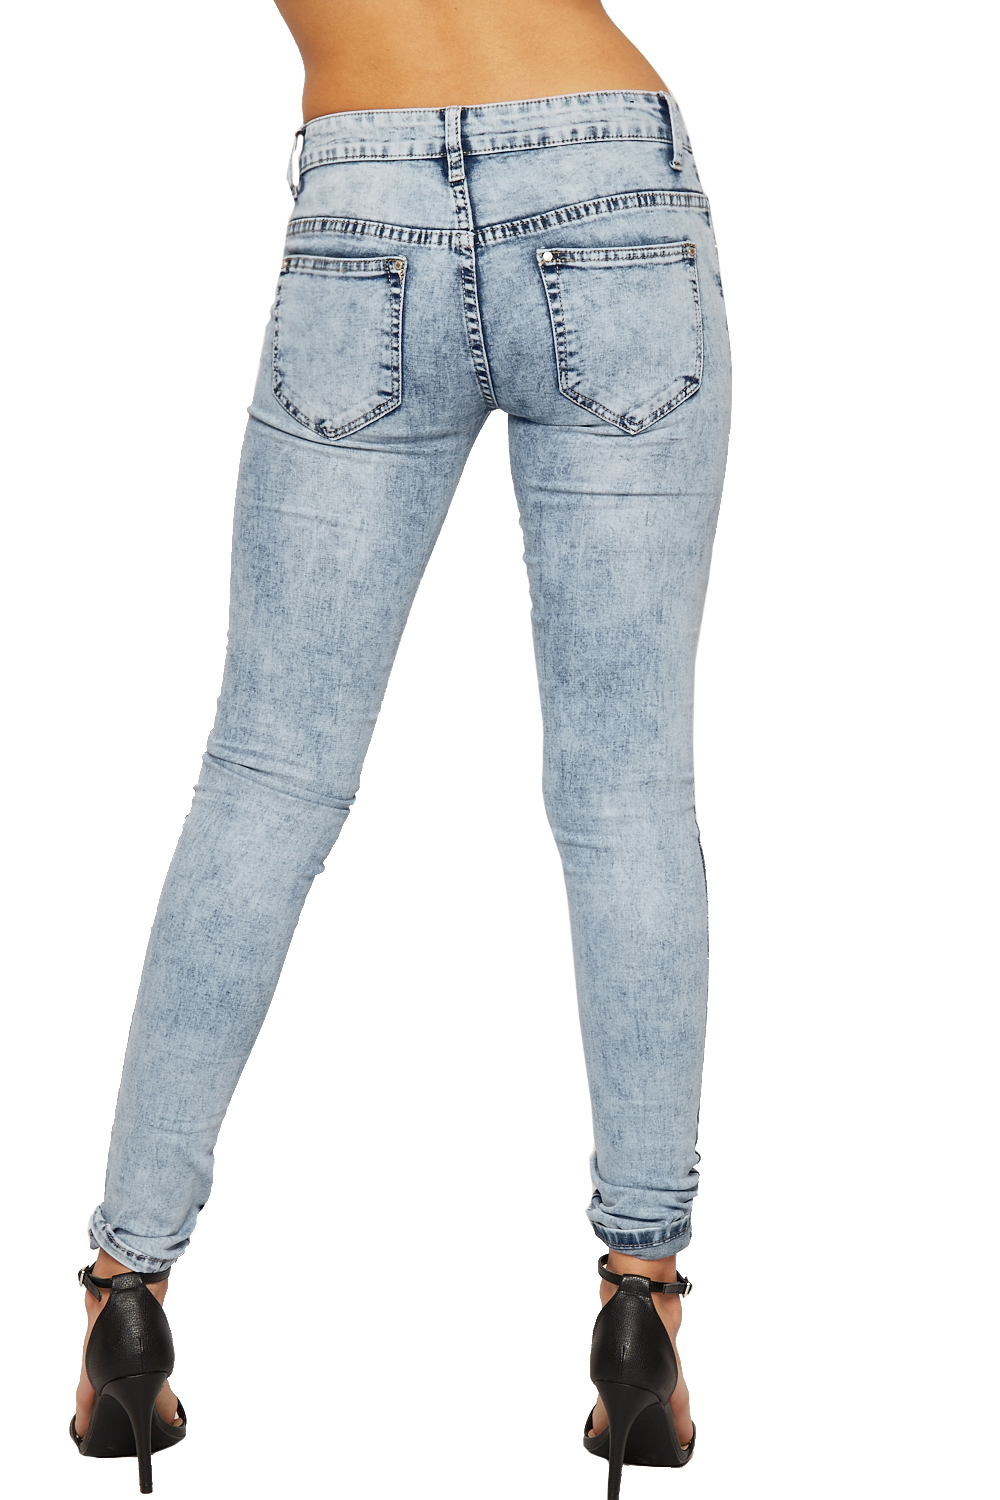 Find great deals on eBay for ladies ripped jeans. Shop with confidence.